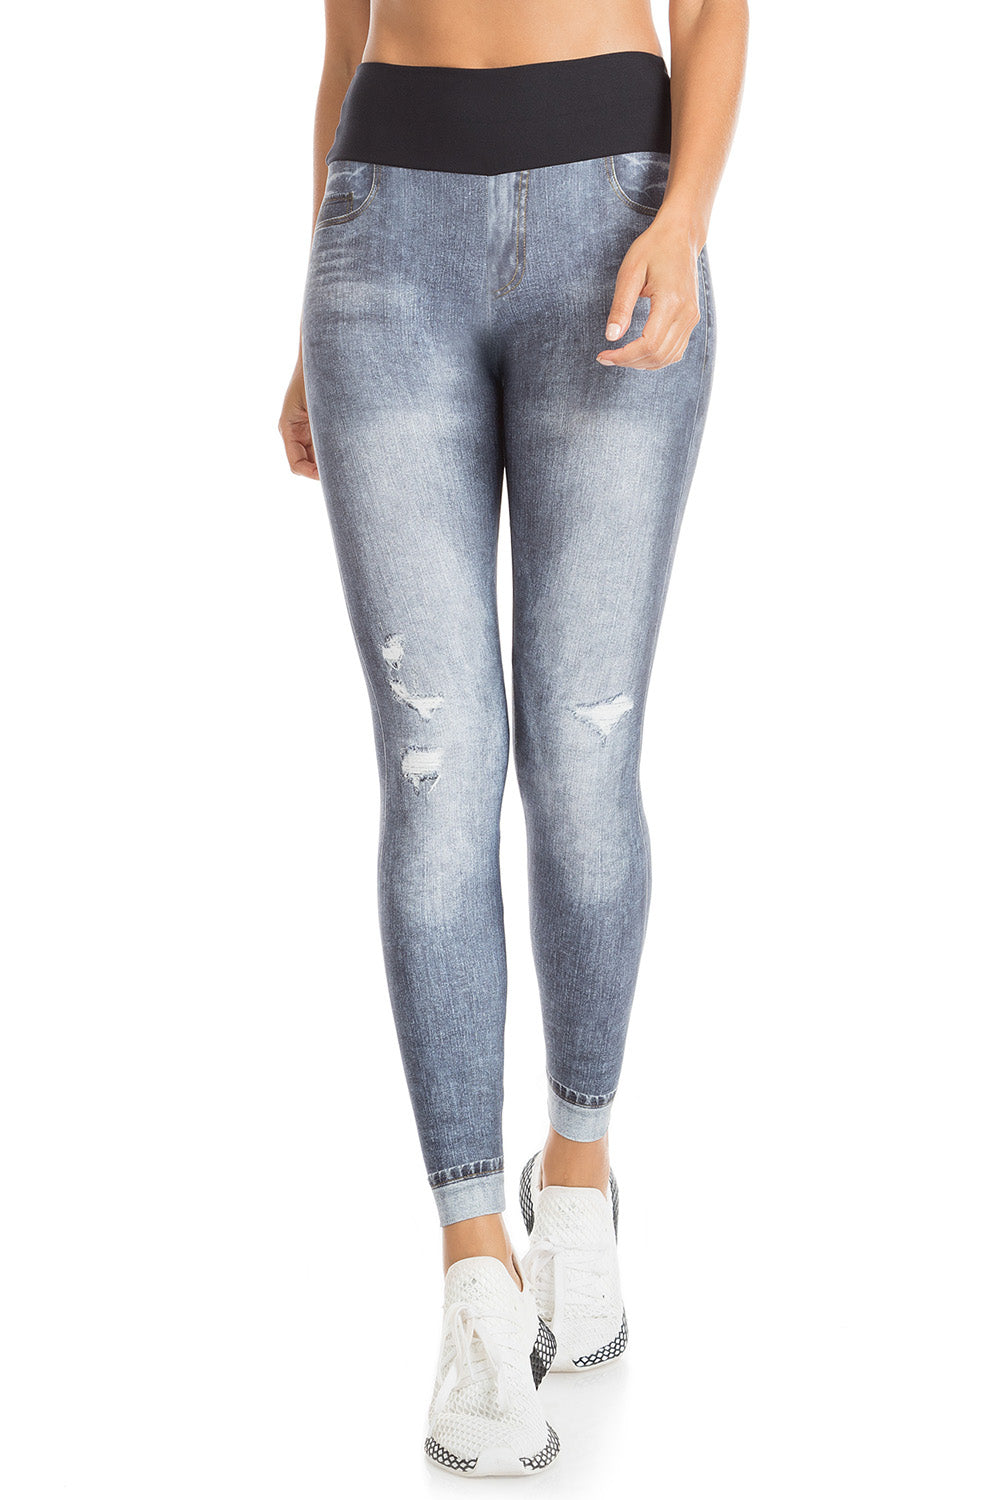 City Breeze Denim Tight